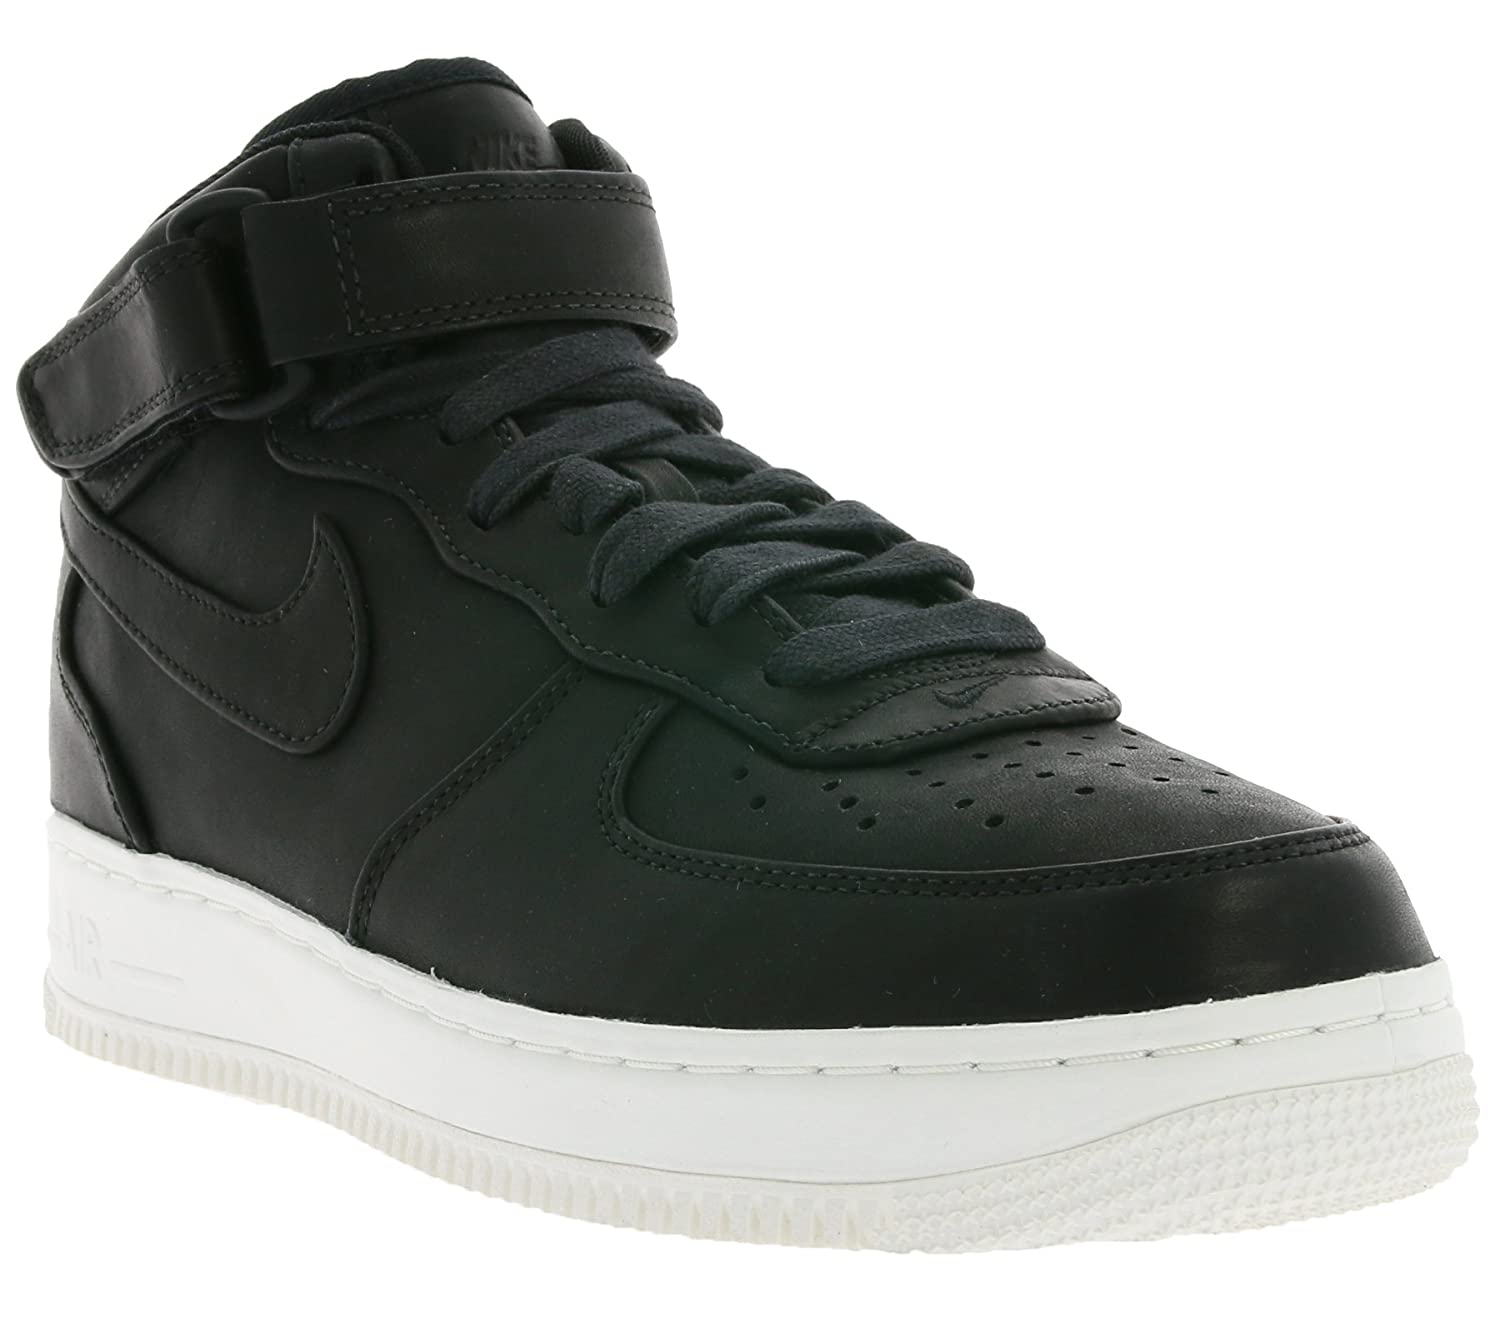 new concept d96d8 7aab6 Amazon.com   Nike Mens NikeLab Air Force 1 MID Leather Mid-Top Athletic  Shoes   Basketball